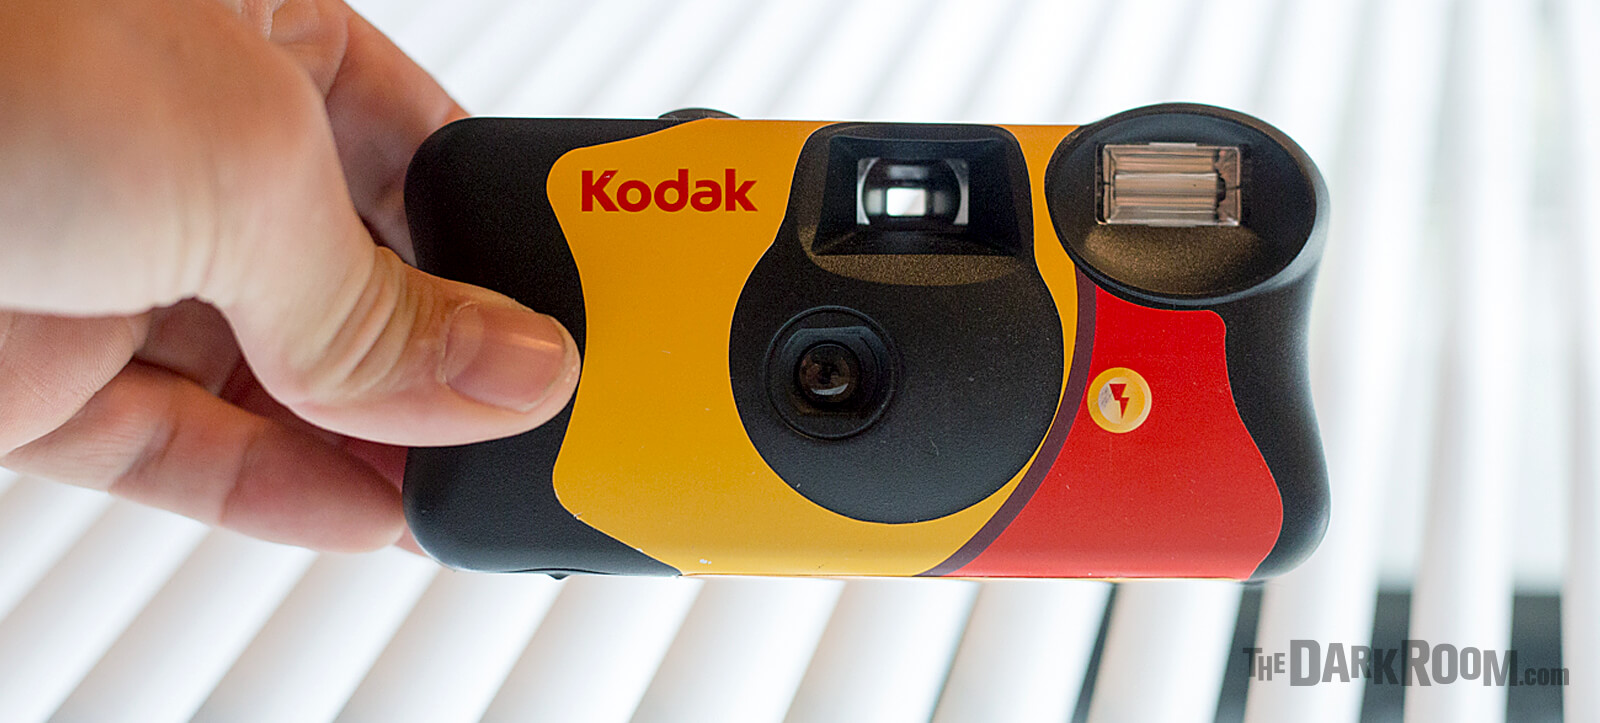 Kodak FunSaver Disposable Camera Review